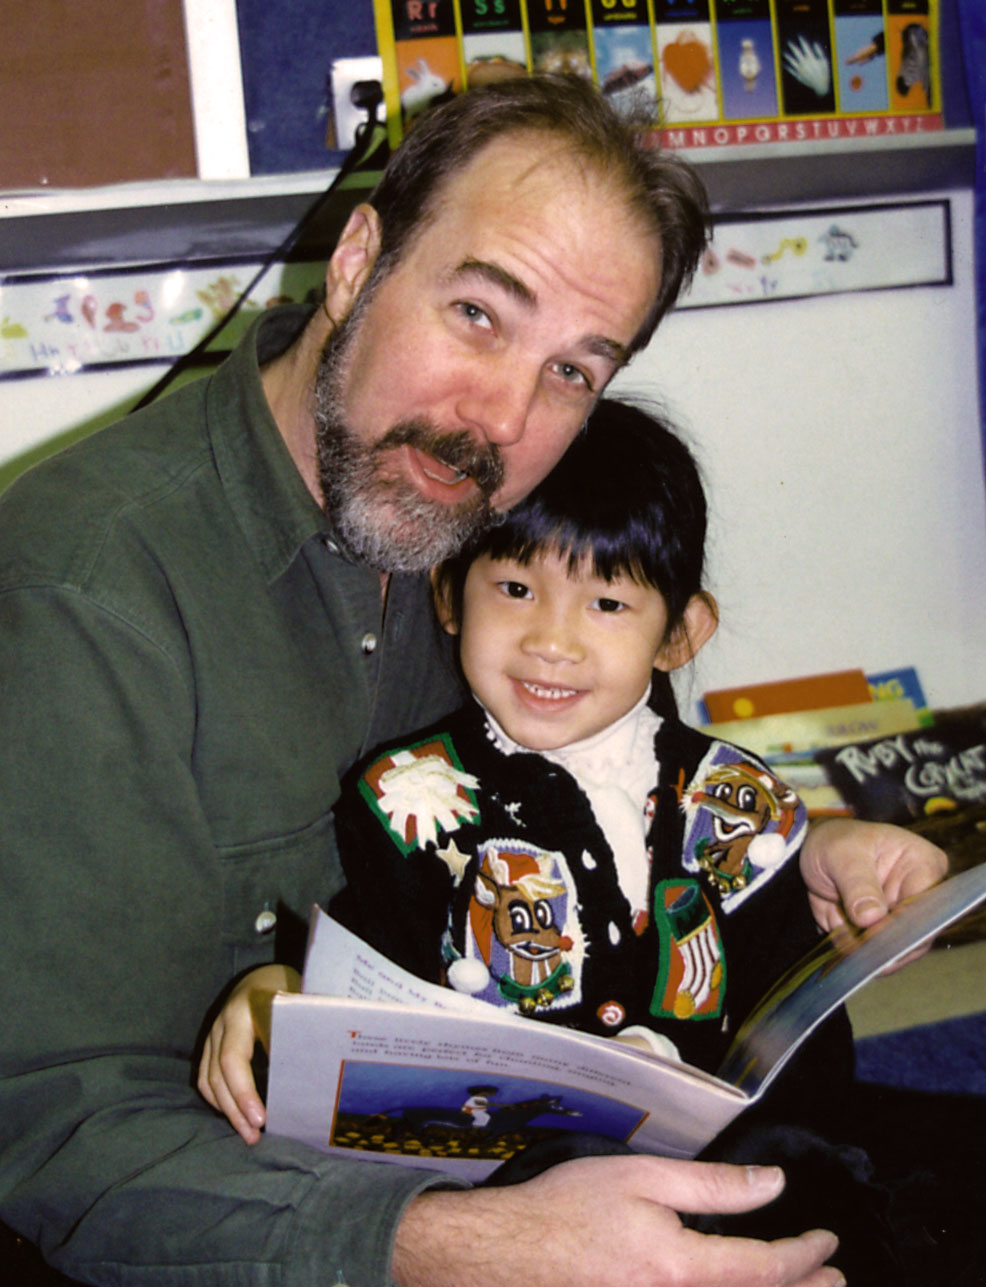 Tom with daughter, Tian (and hair), at a parent read-aloud session, NYC PS 234.